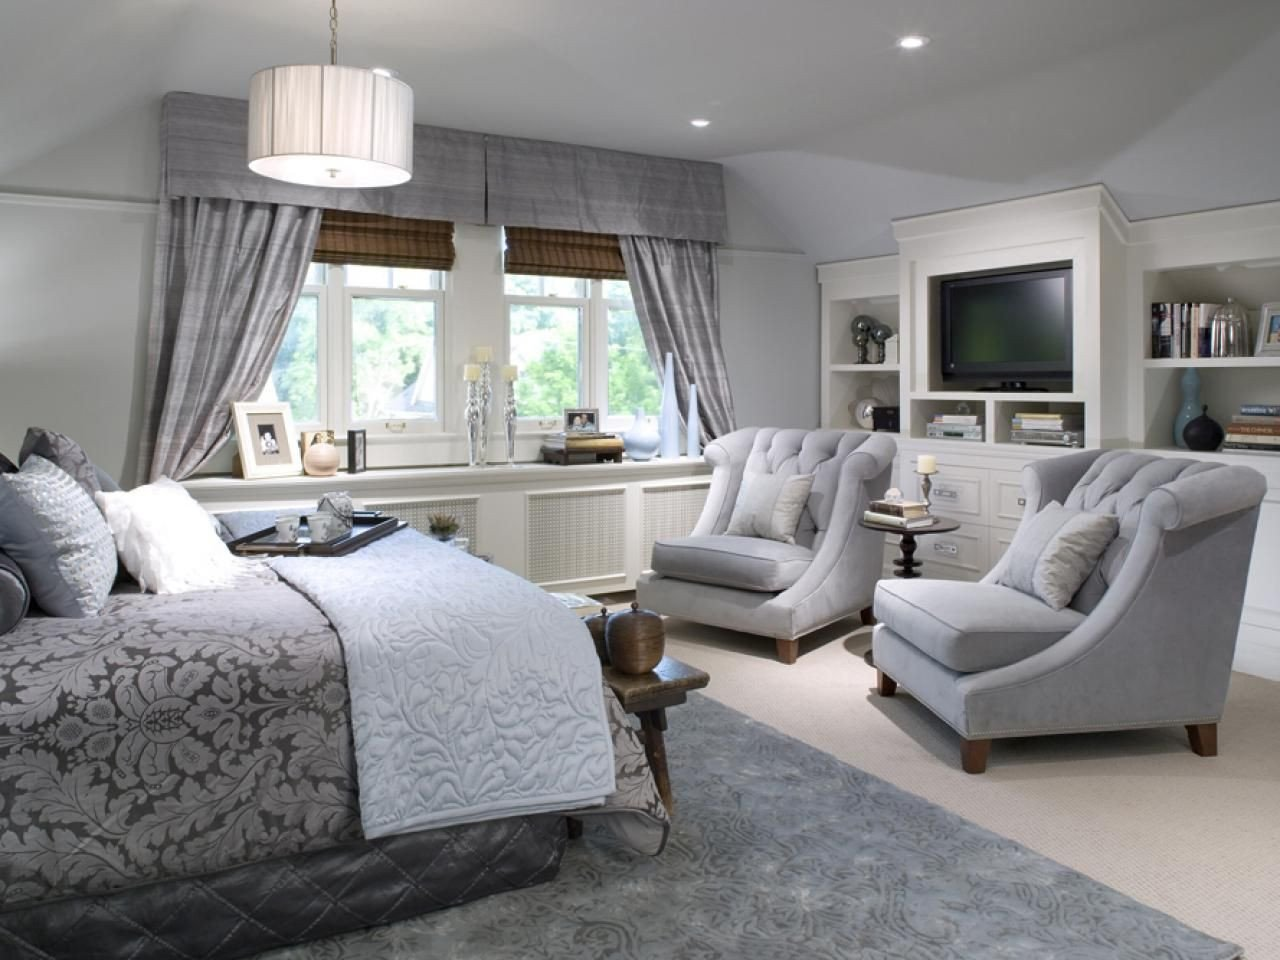 Master Bedroom Makeover Ideas Beautiful I Like This Layout Put the Tv Against the Large Wall and A